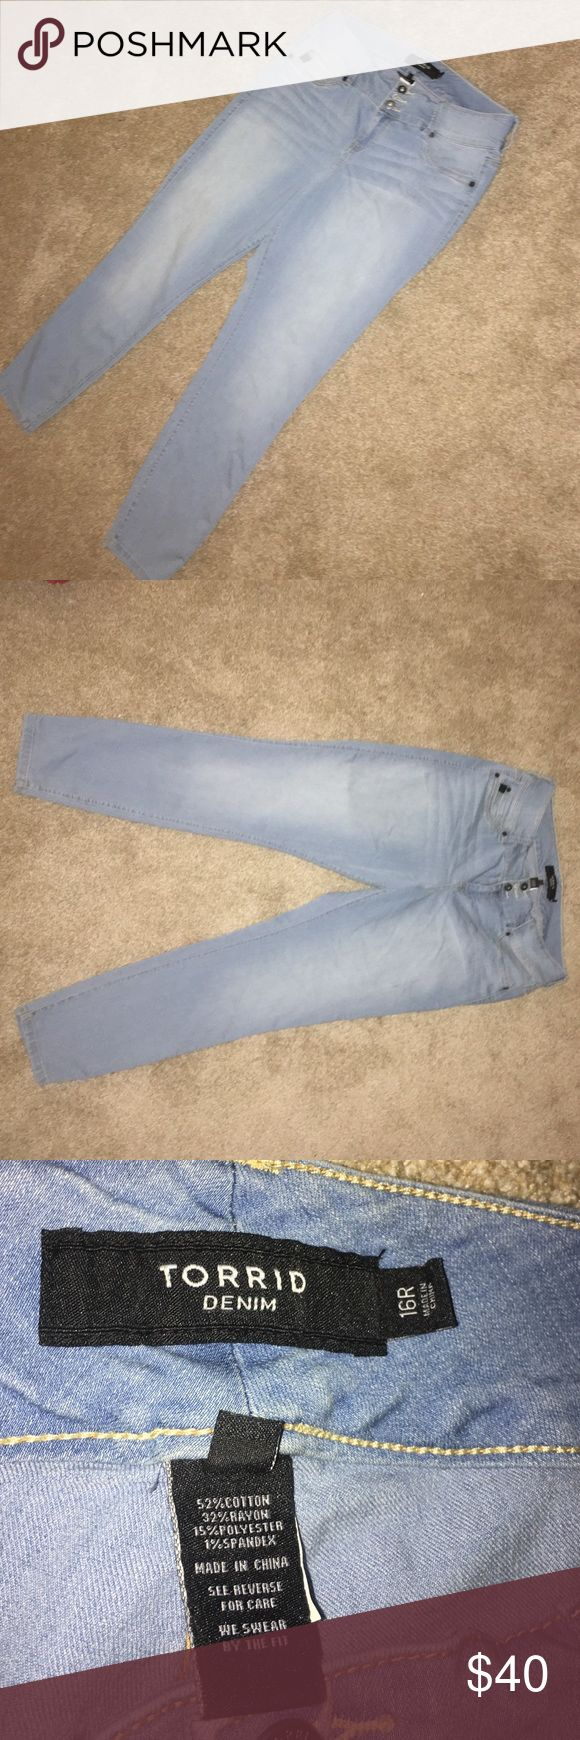 New Torrid Light Blue Skinny Jeans These Torrid skinny jeans are brand new! They are light blue and have 3 buttons on waist to diminish the need for a belt. They look and feel great! Have 2 pockets on back and a small pocket on the front. They have been in my closet which is why they look wrinkly but they have never been used before! torrid Jeans Skinny